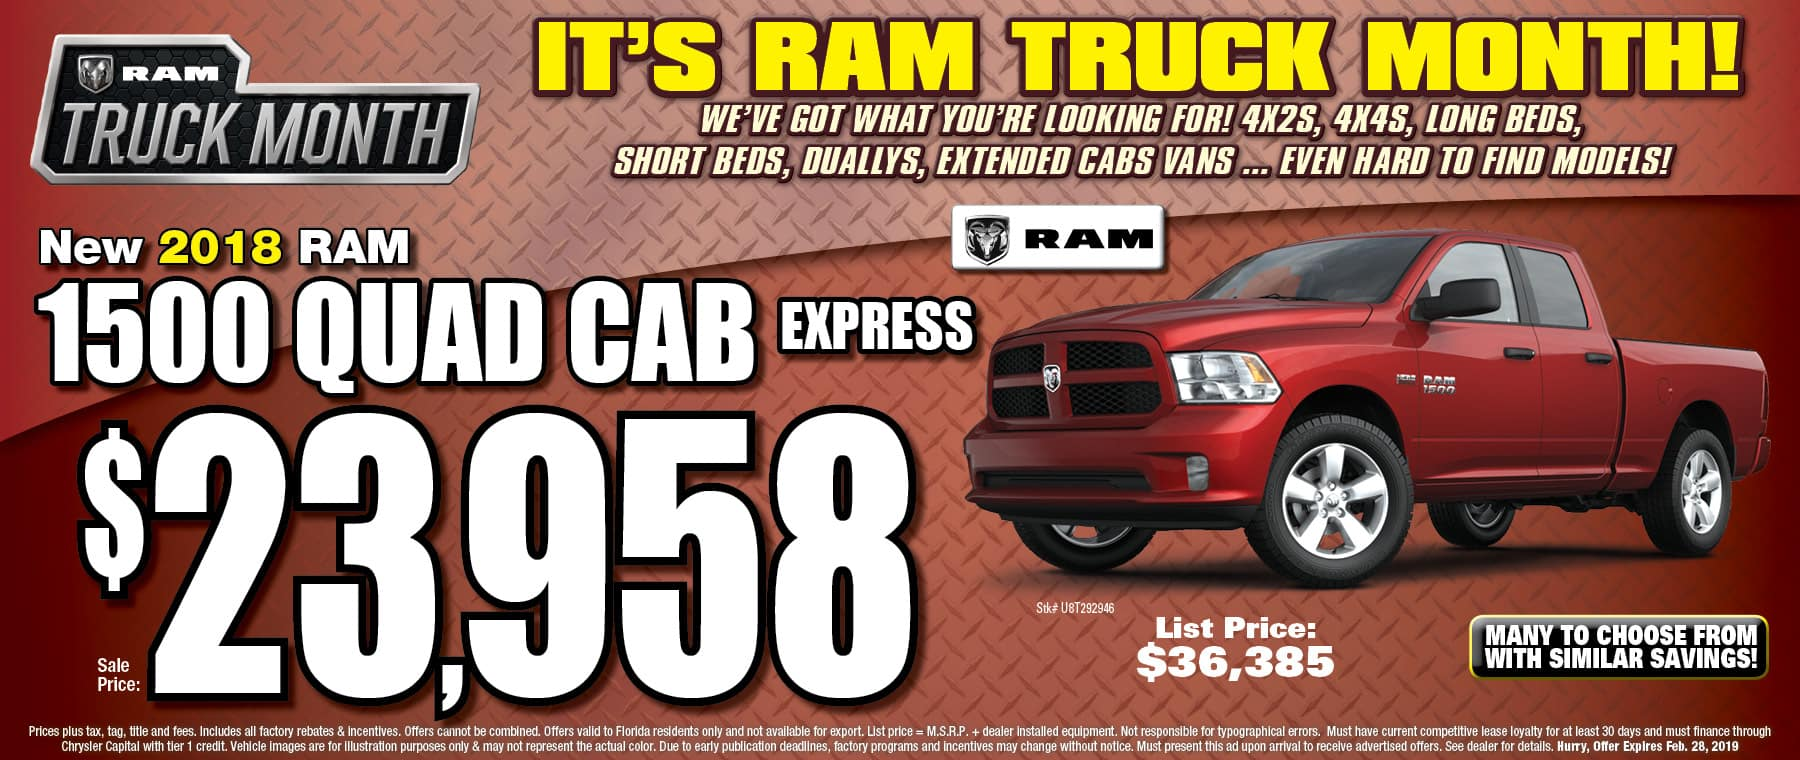 New 2018 RAM Quad Cab Express! - University Dodge RAM!